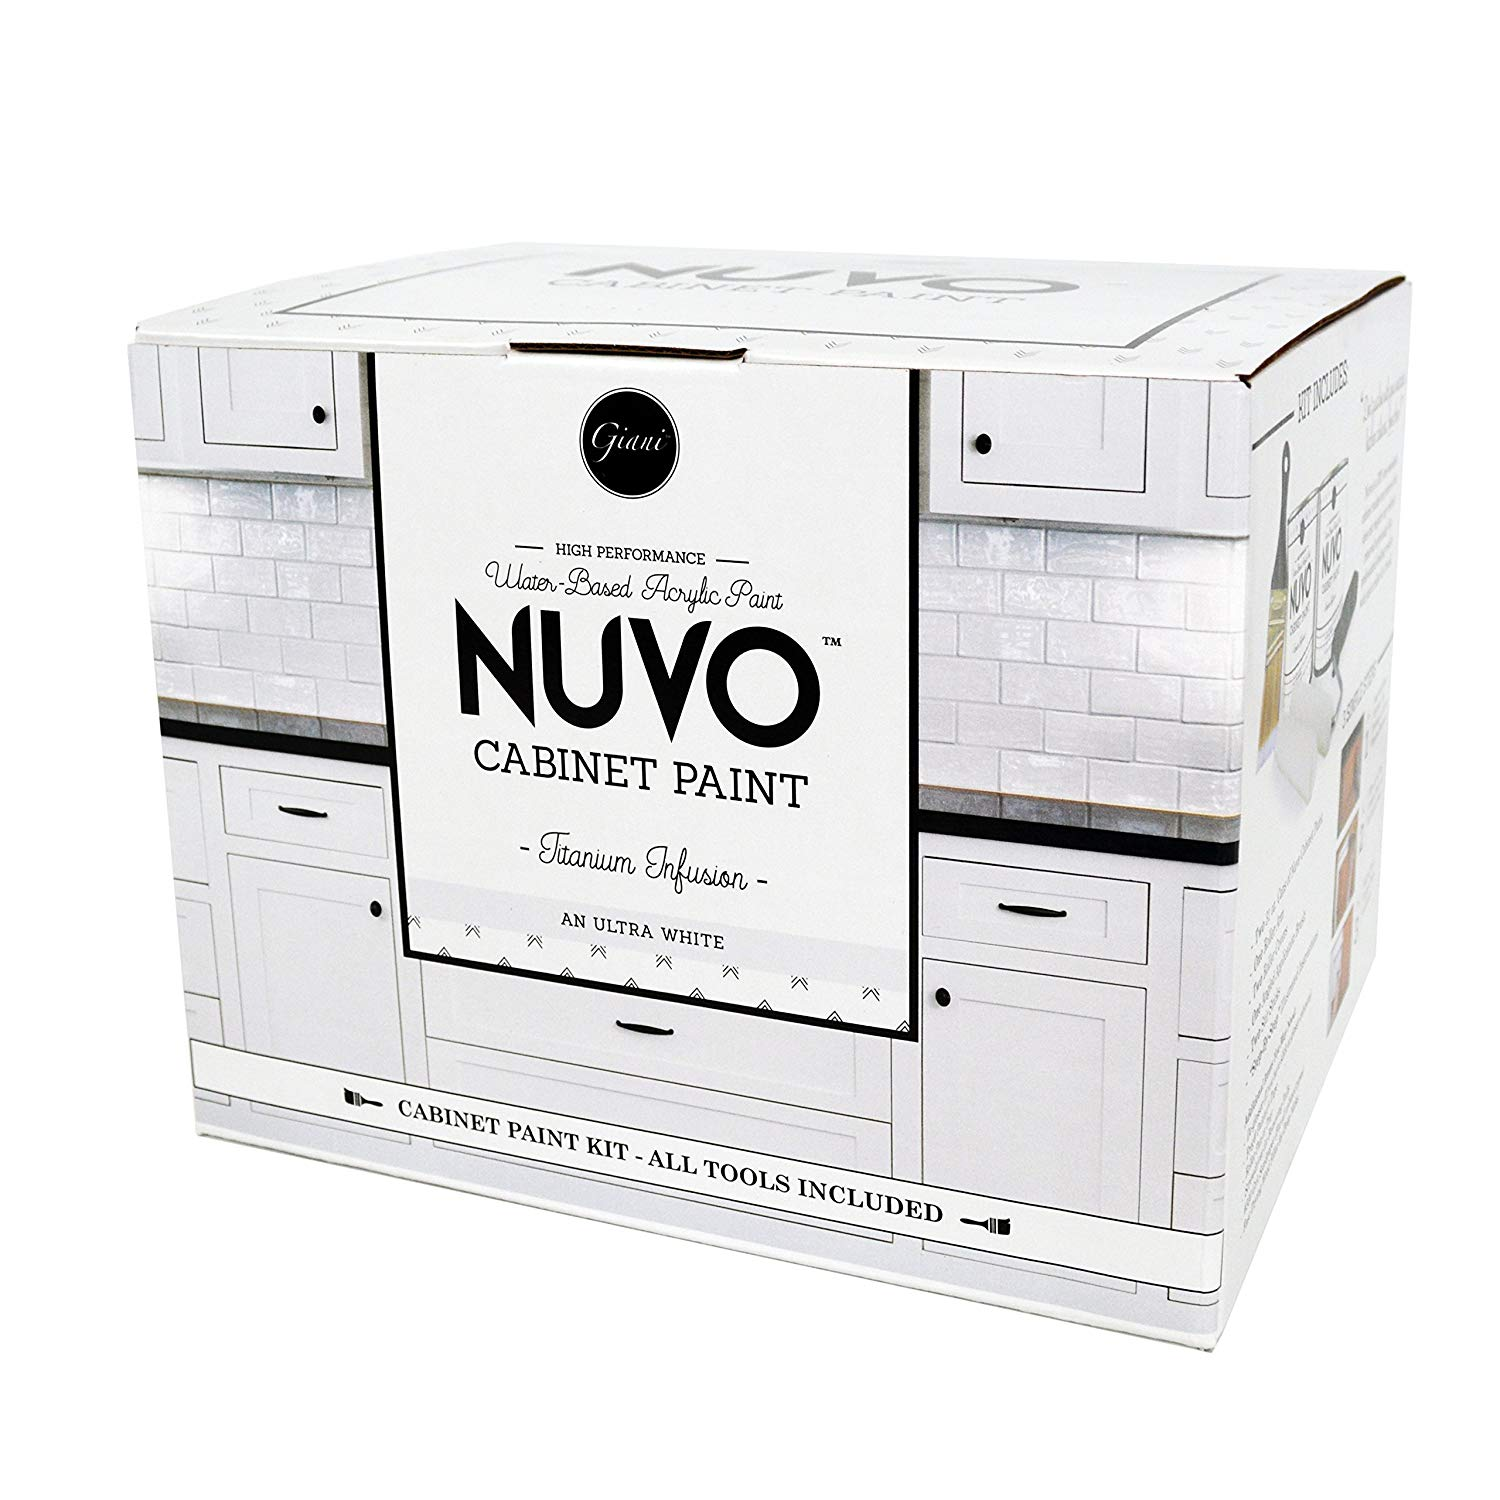 Kitchen Cabinet Refacing Kit Nuvo in the box ships everything you need